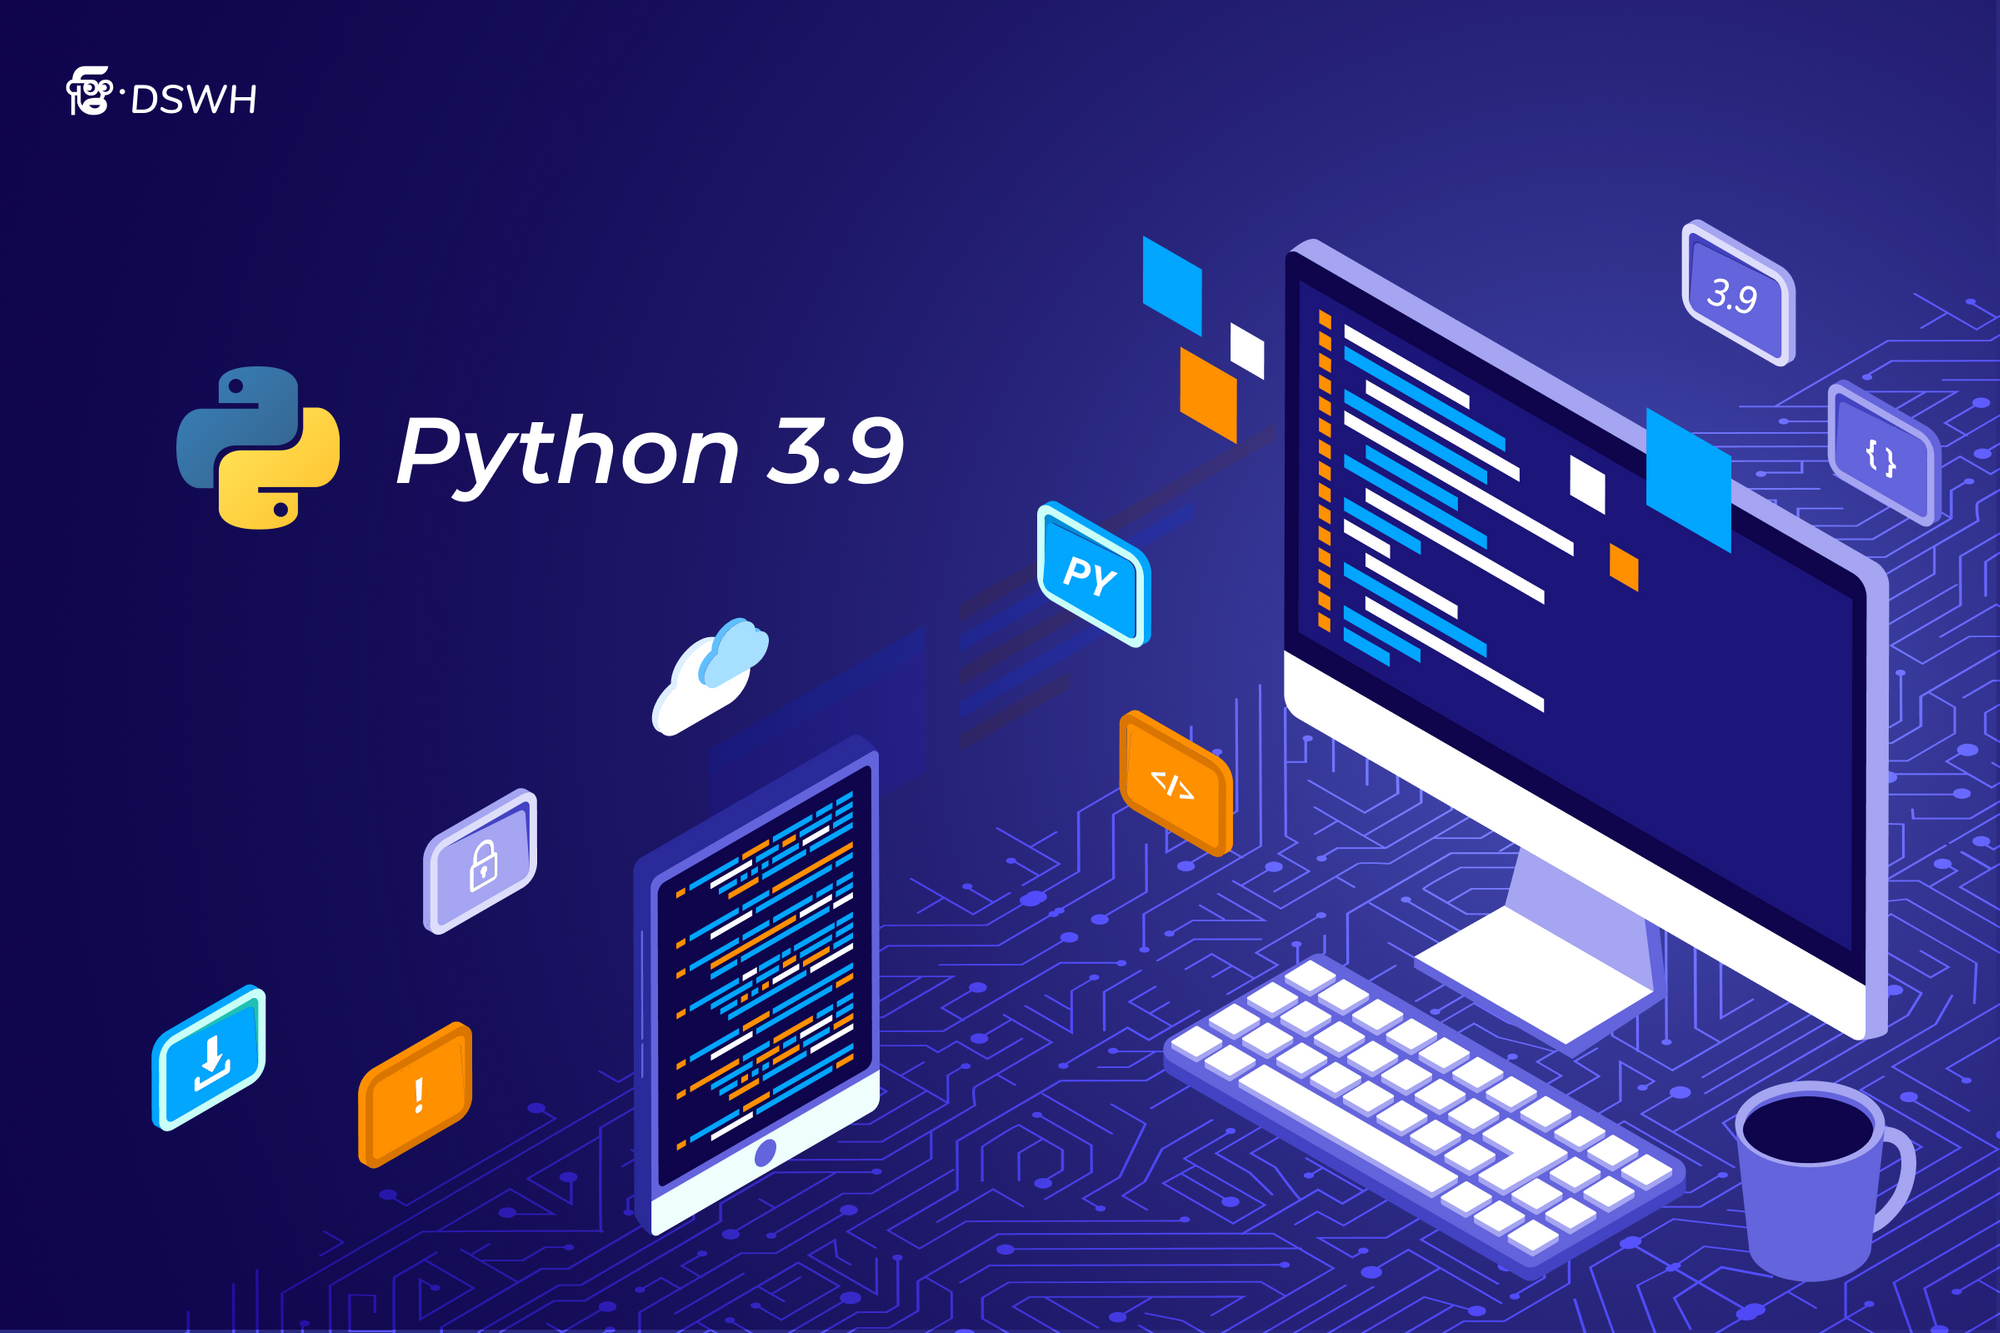 Python 3.9 Updates Explained with Hands-on Code Examples